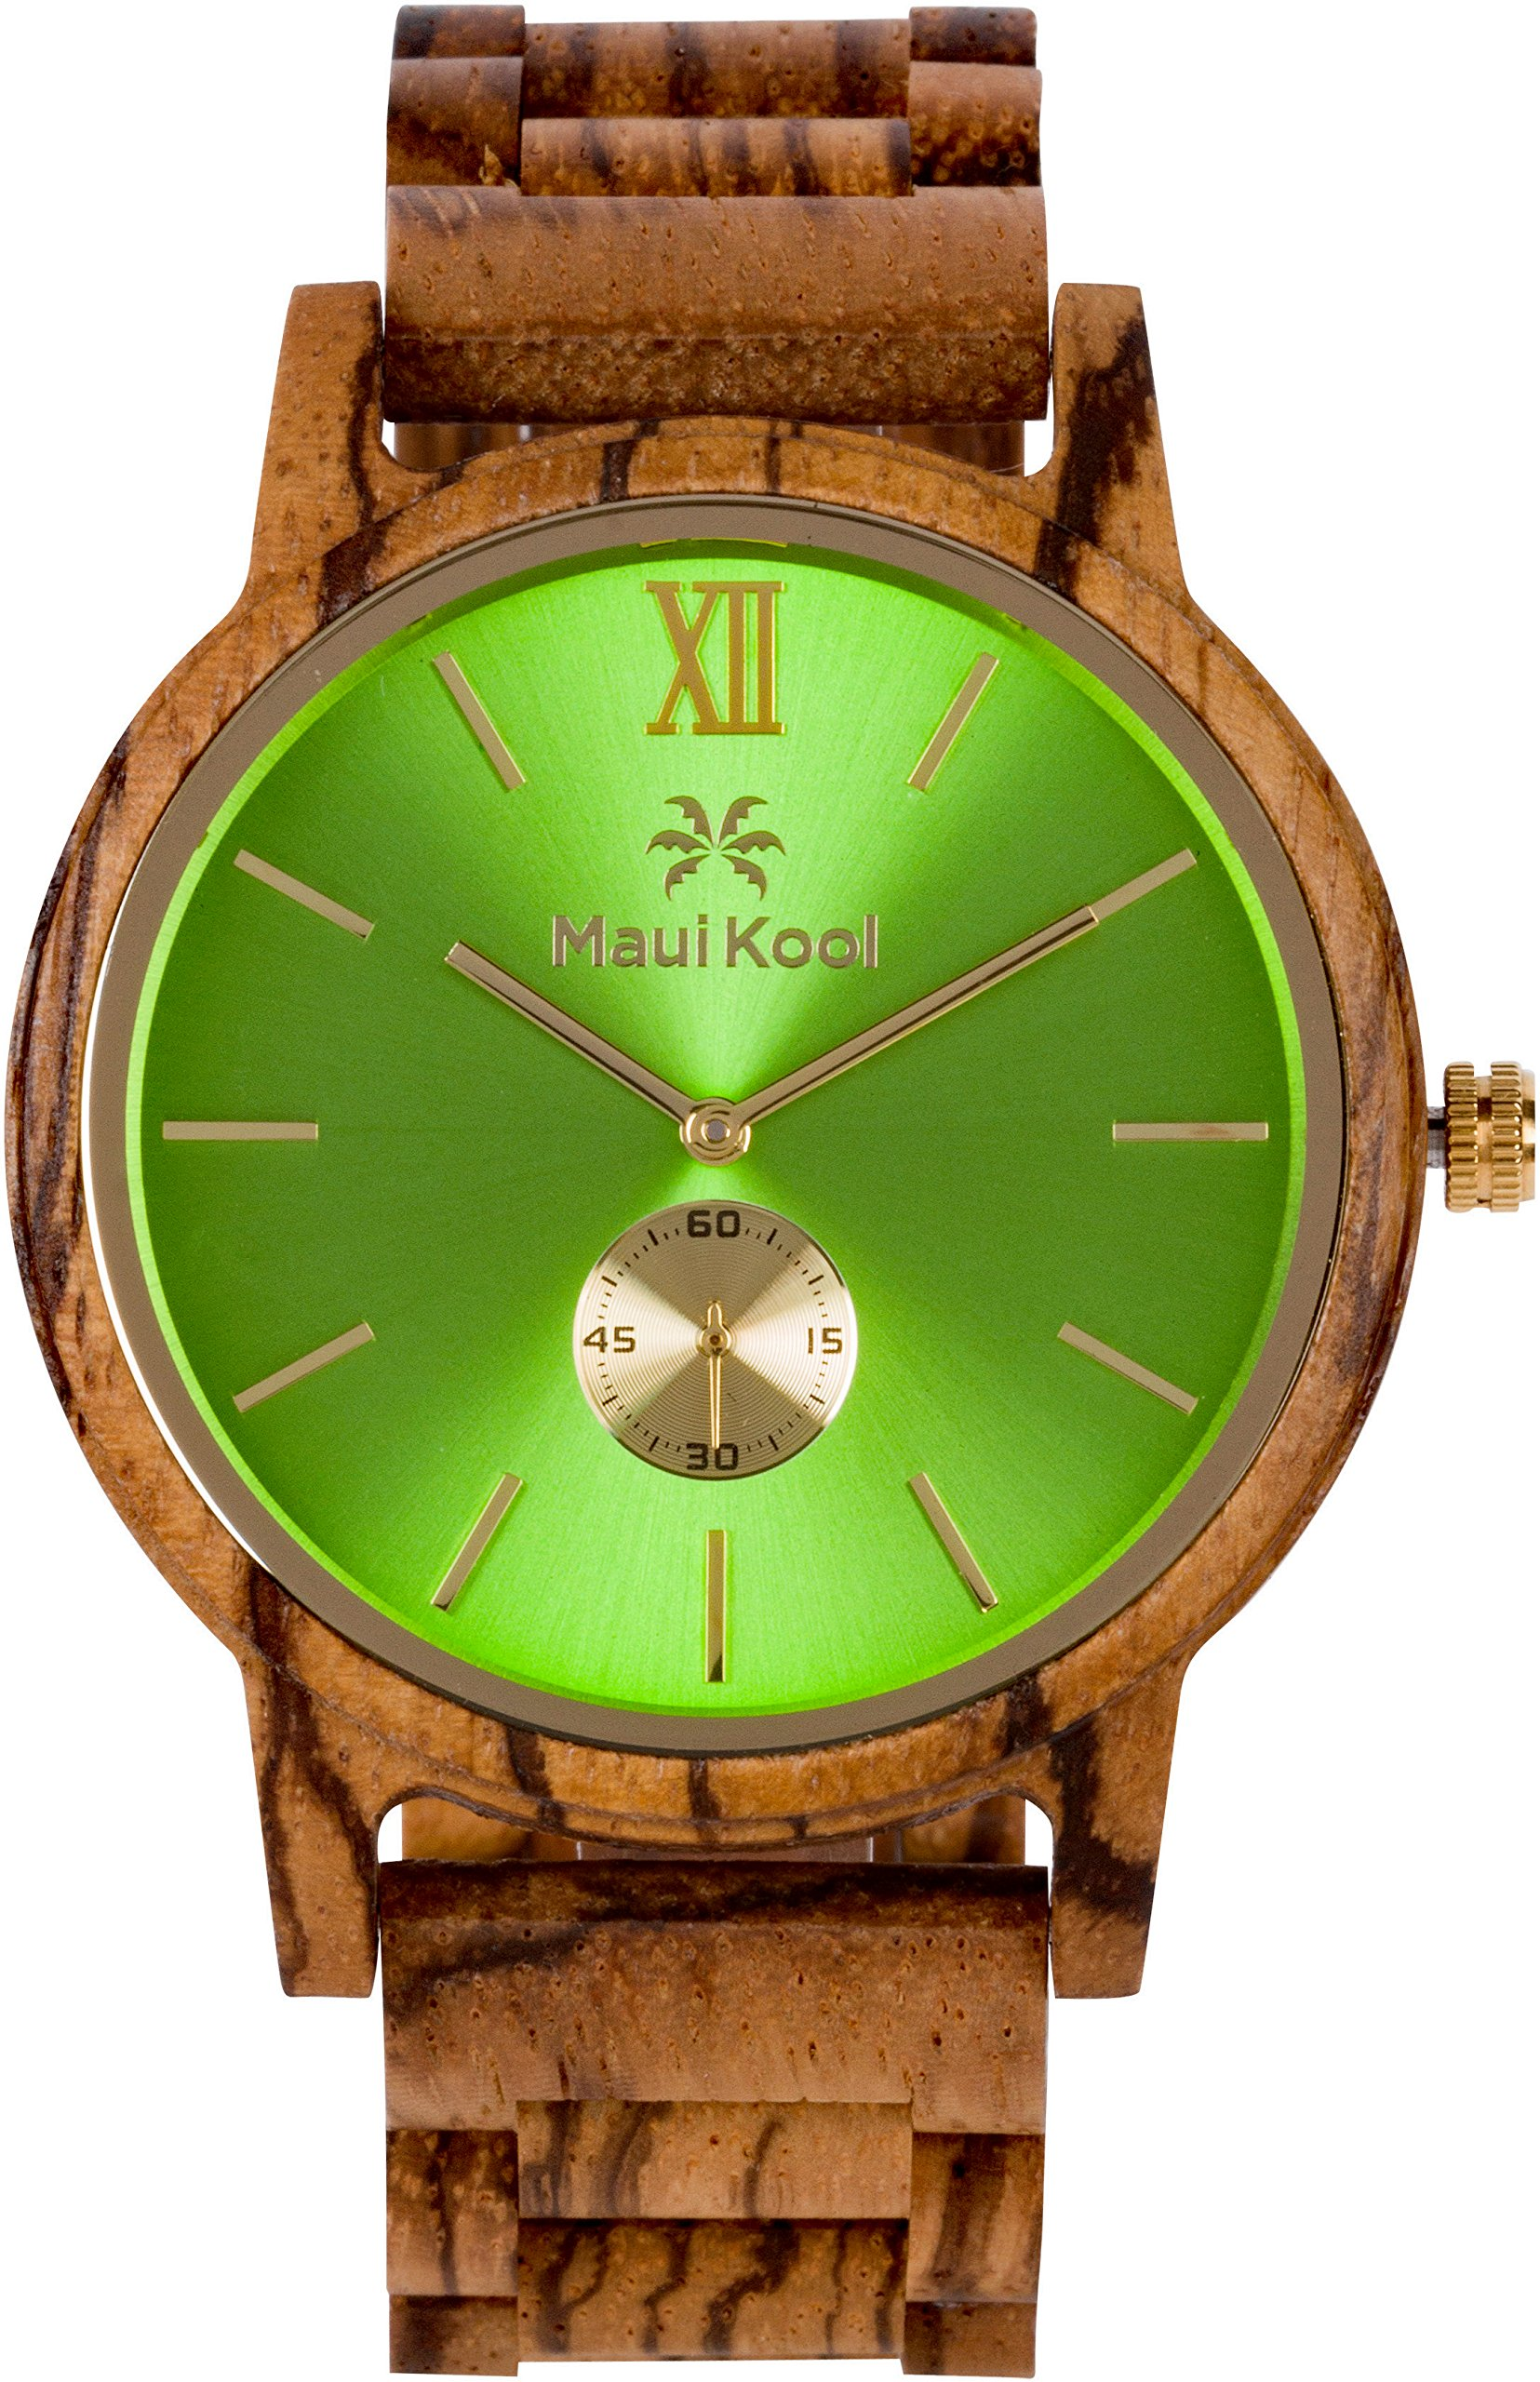 Wooden Watch For Men Maui Kool Kaanapali Collection Analog Large Face Wood Watch Bamboo Gift Box (C6 - Green Face) by Maui Kool (Image #2)